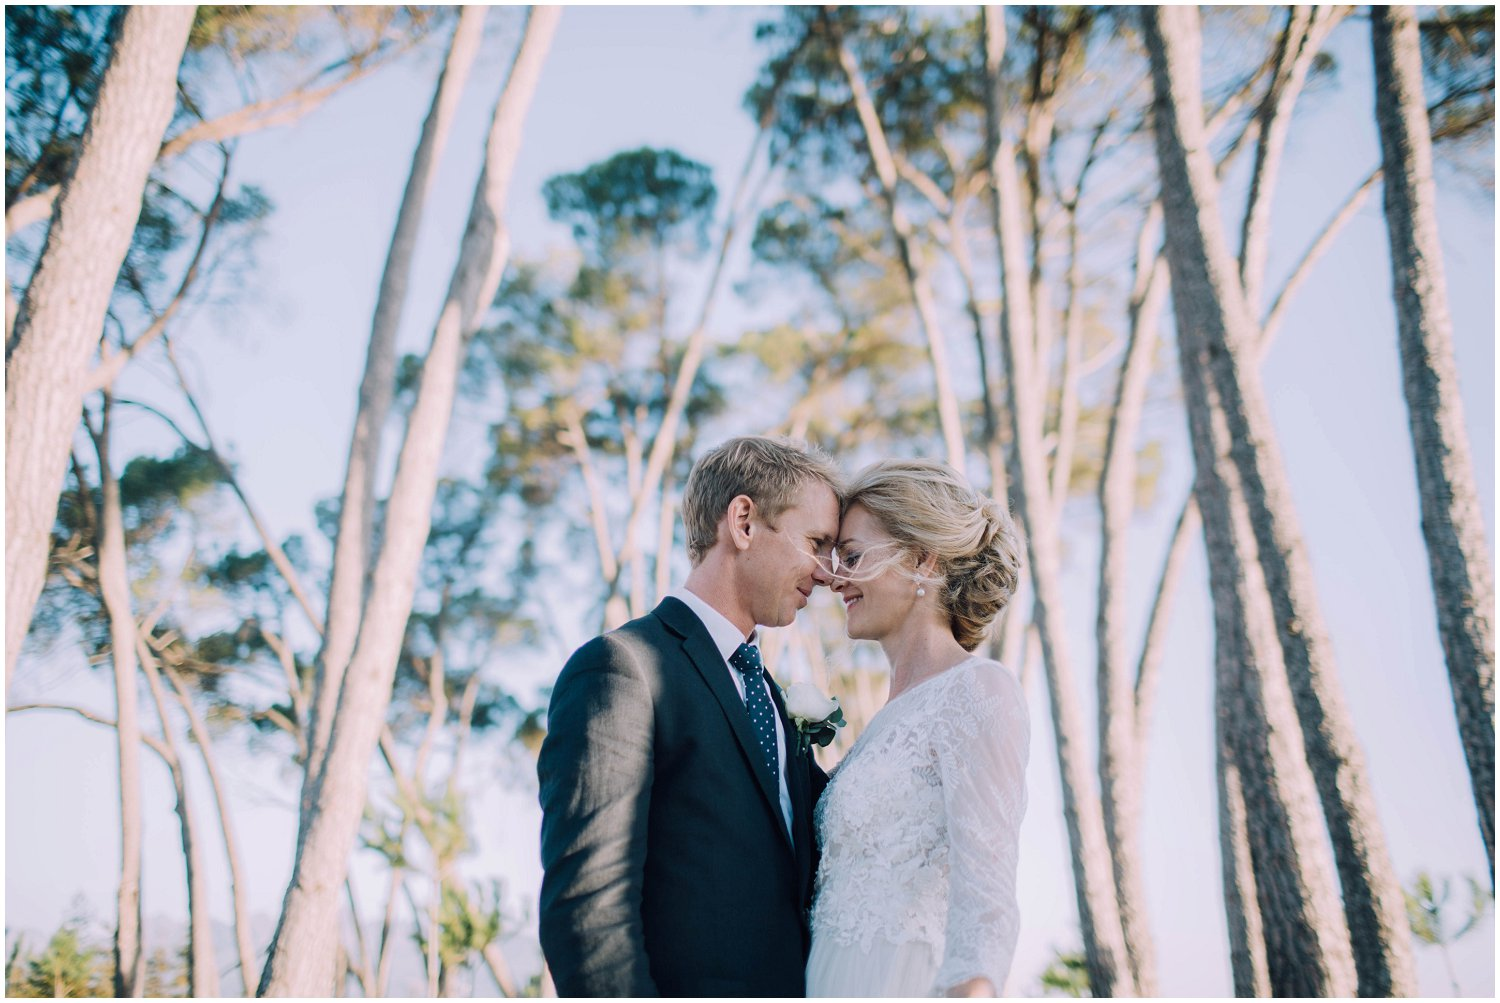 Top Wedding Photographer Cape Town South Africa Artistic Creative Documentary Wedding Photography Rue Kruger_0752.jpg